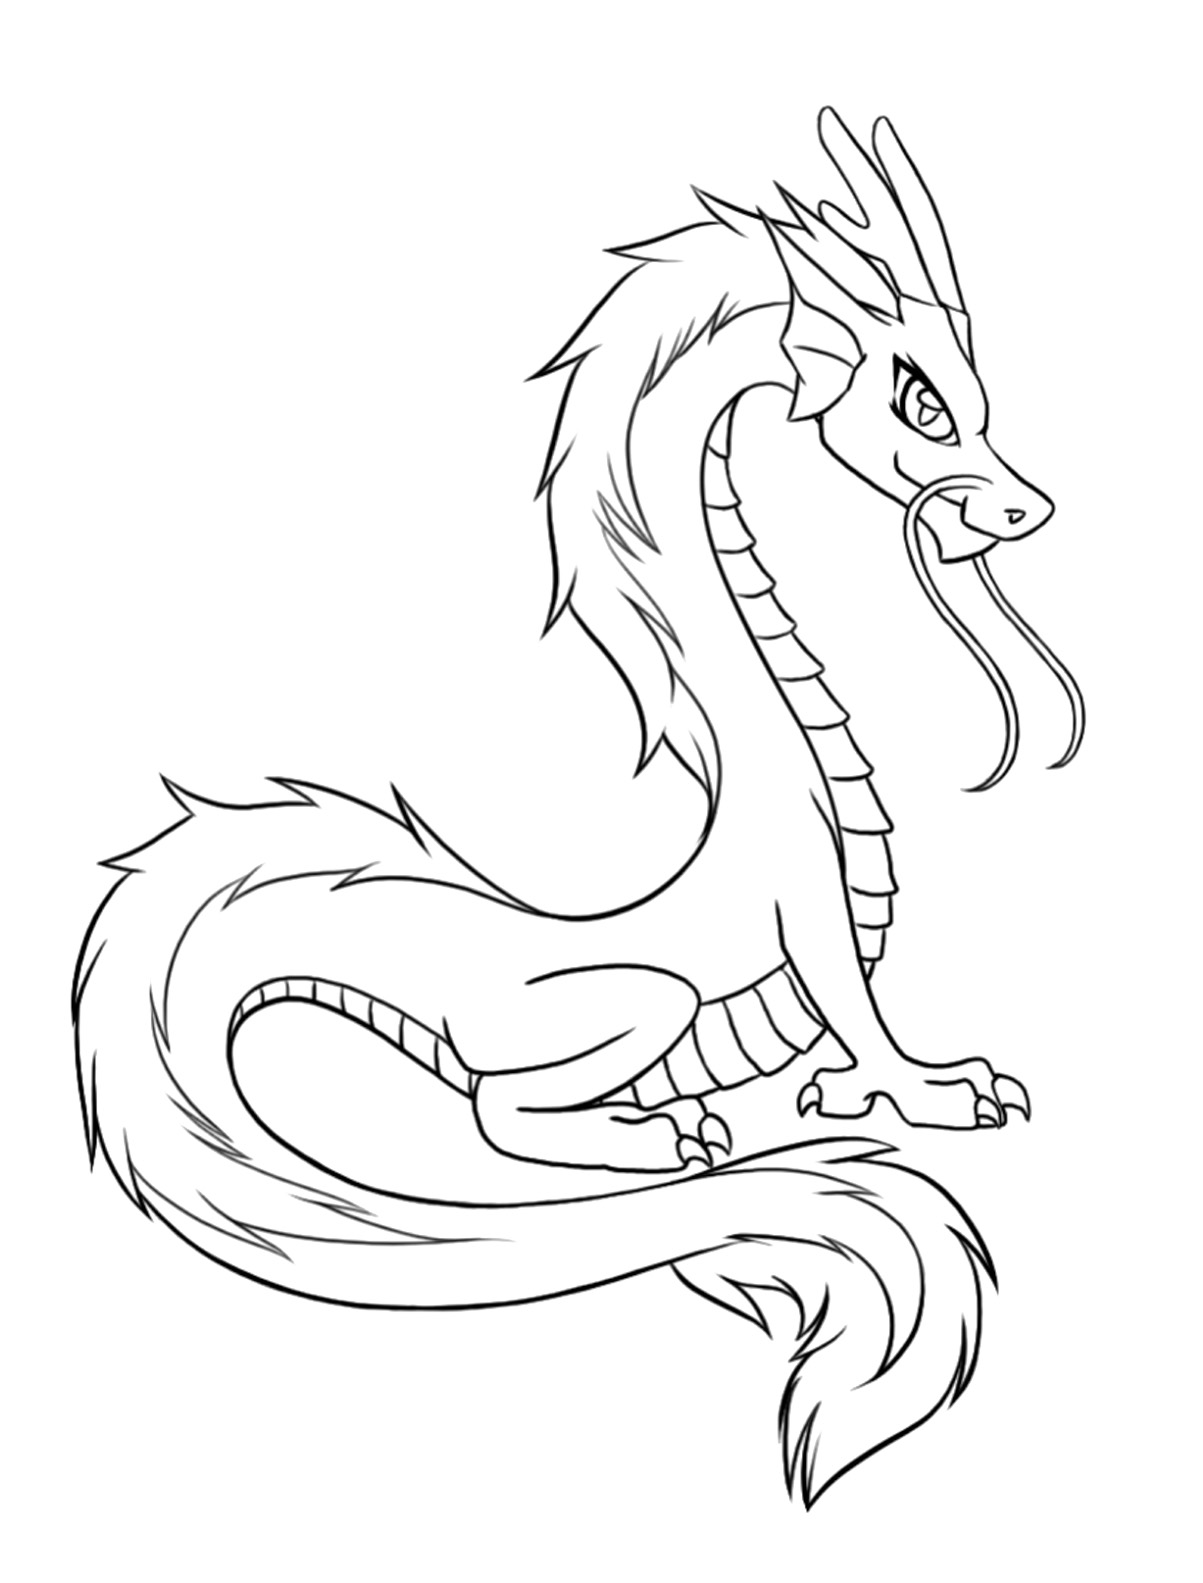 printable dragons dragon coloring pages for adults best coloring pages for printable dragons